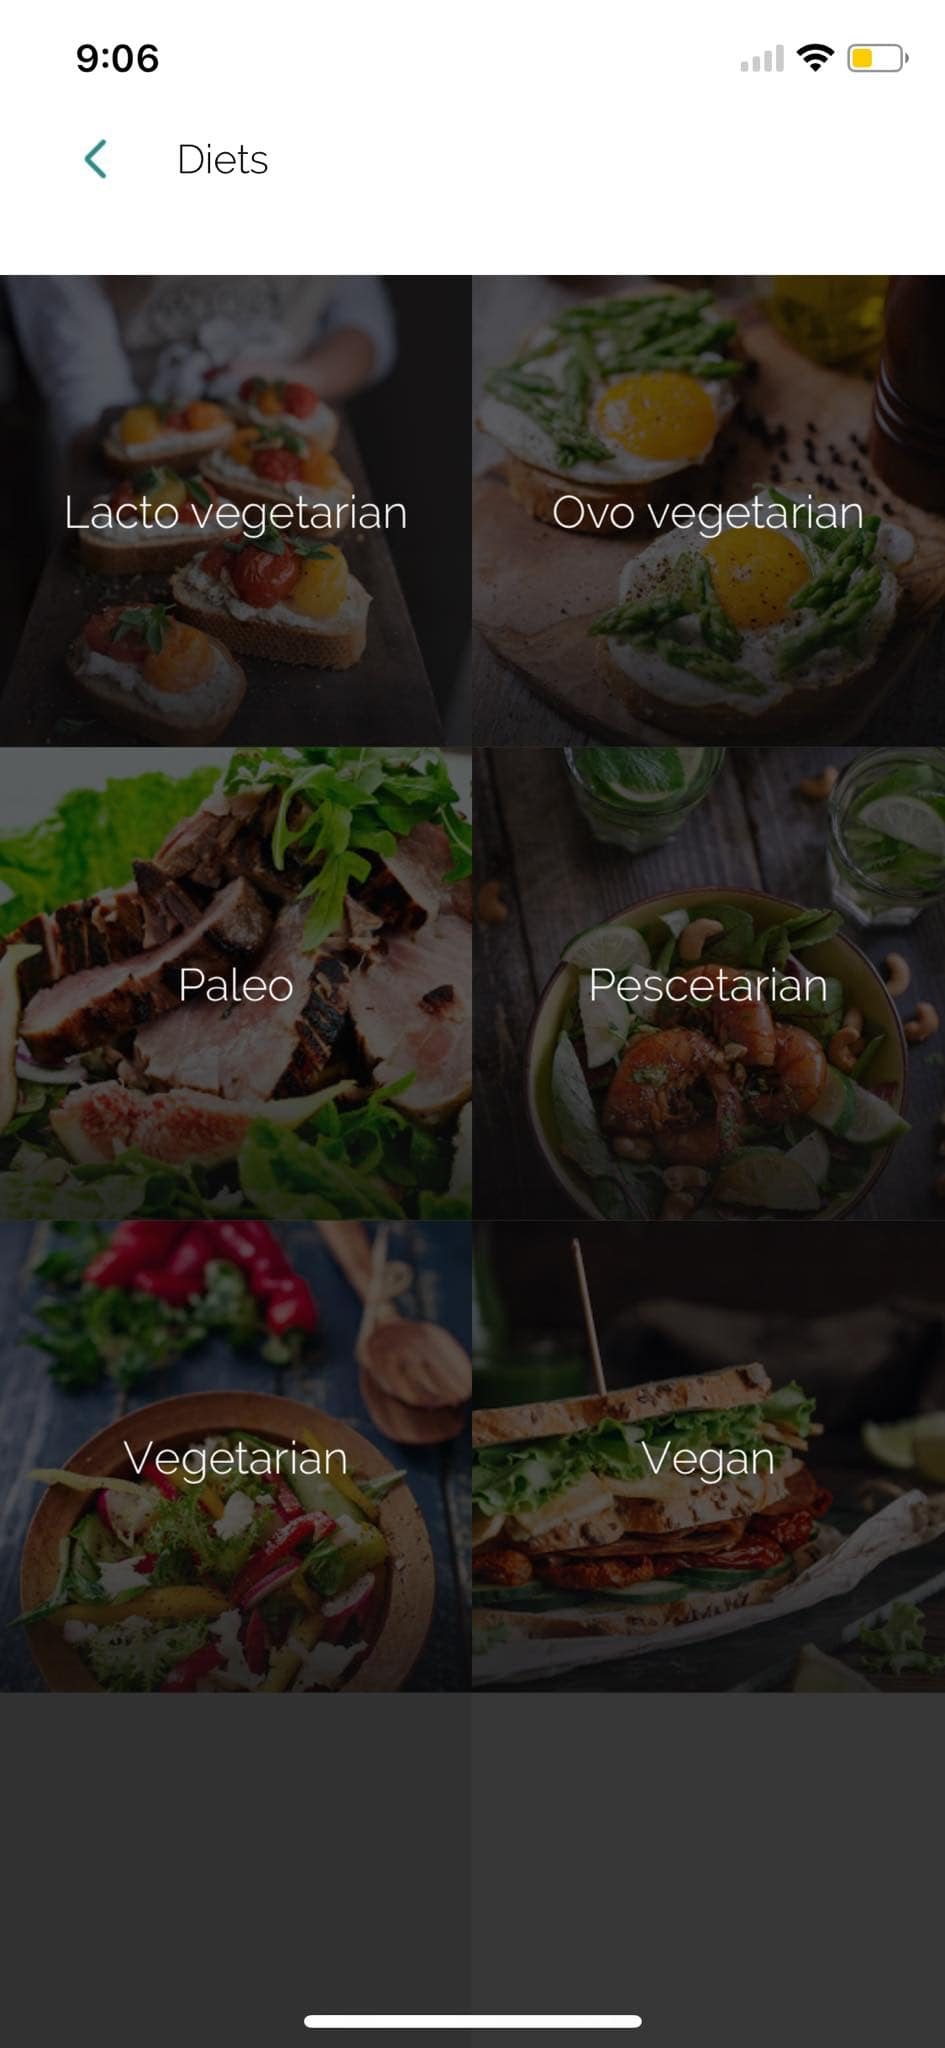 Diets on iOS by Yummly from UIGarage